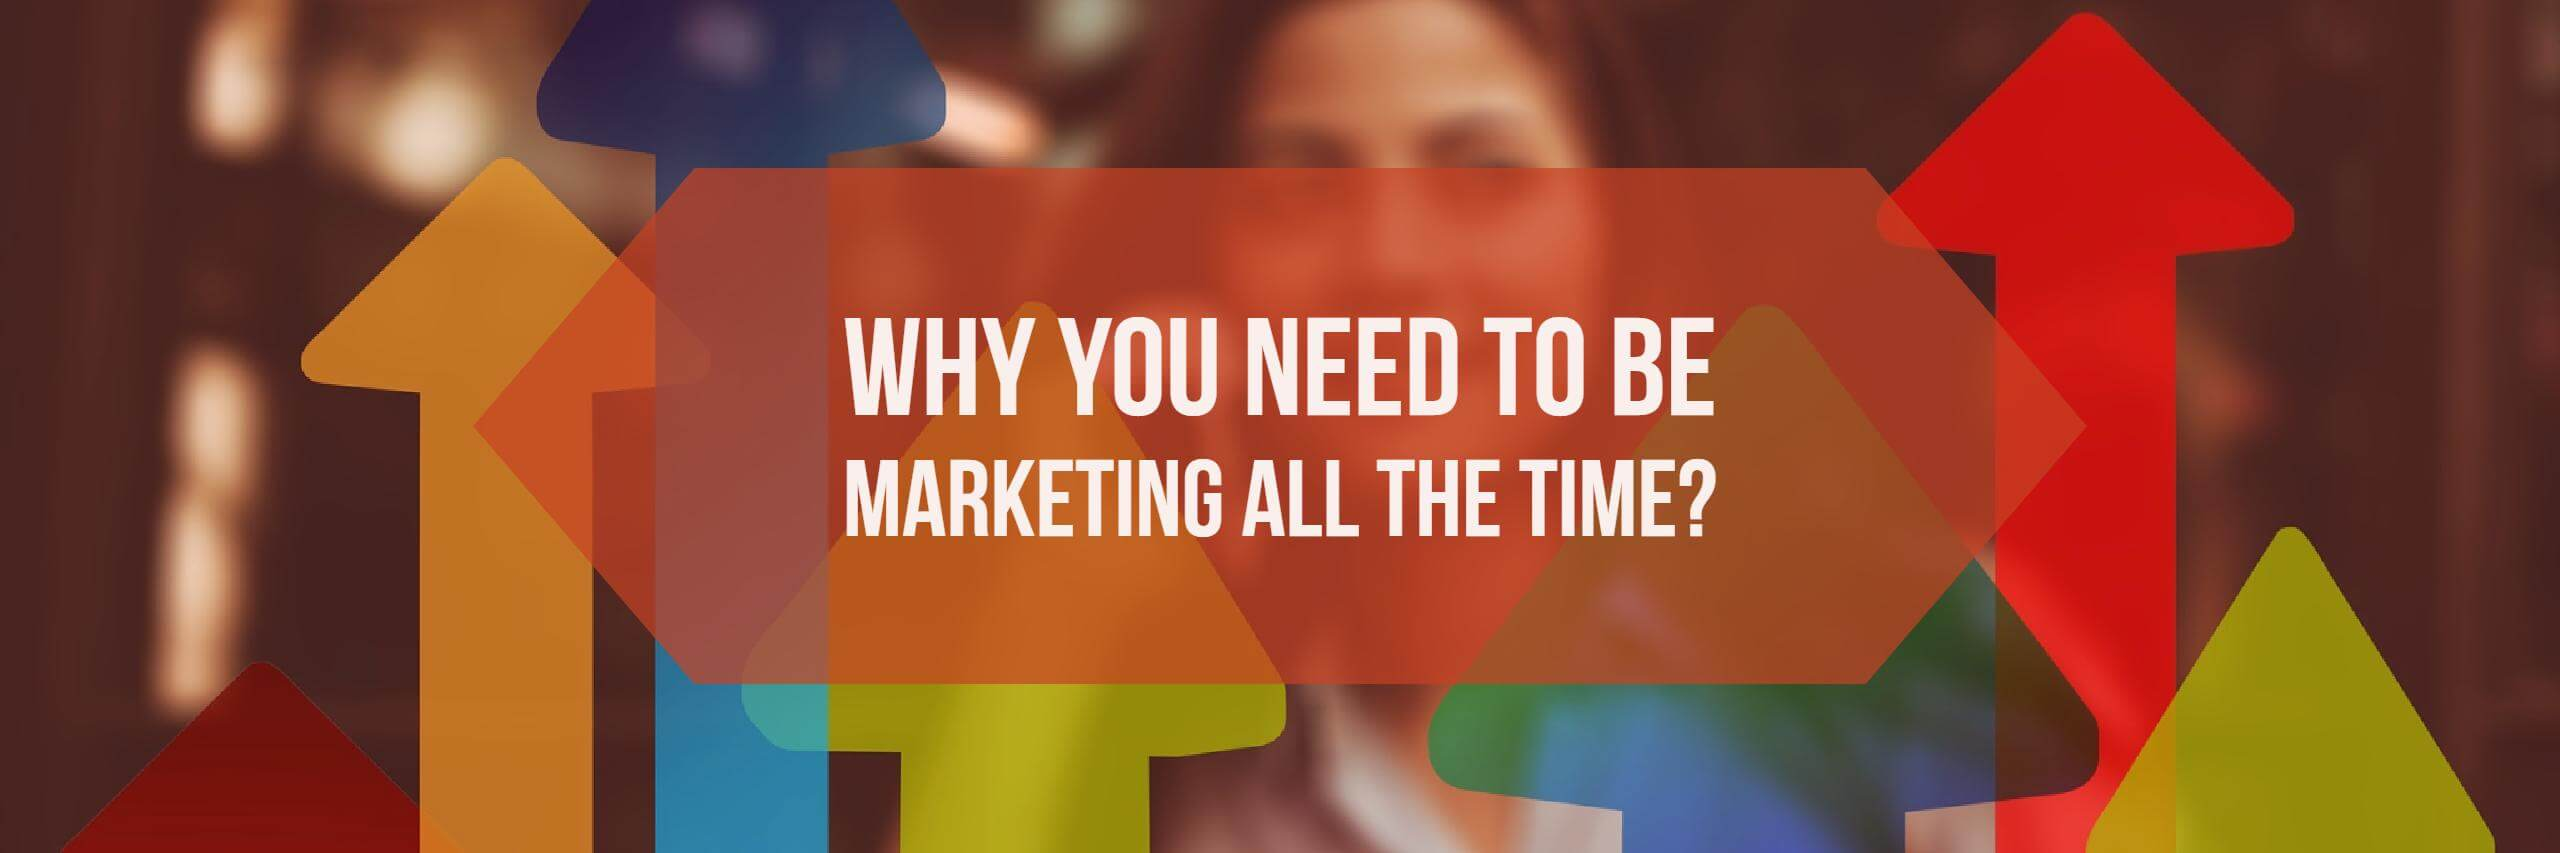 Why You Need To Be Marketing All The Time?